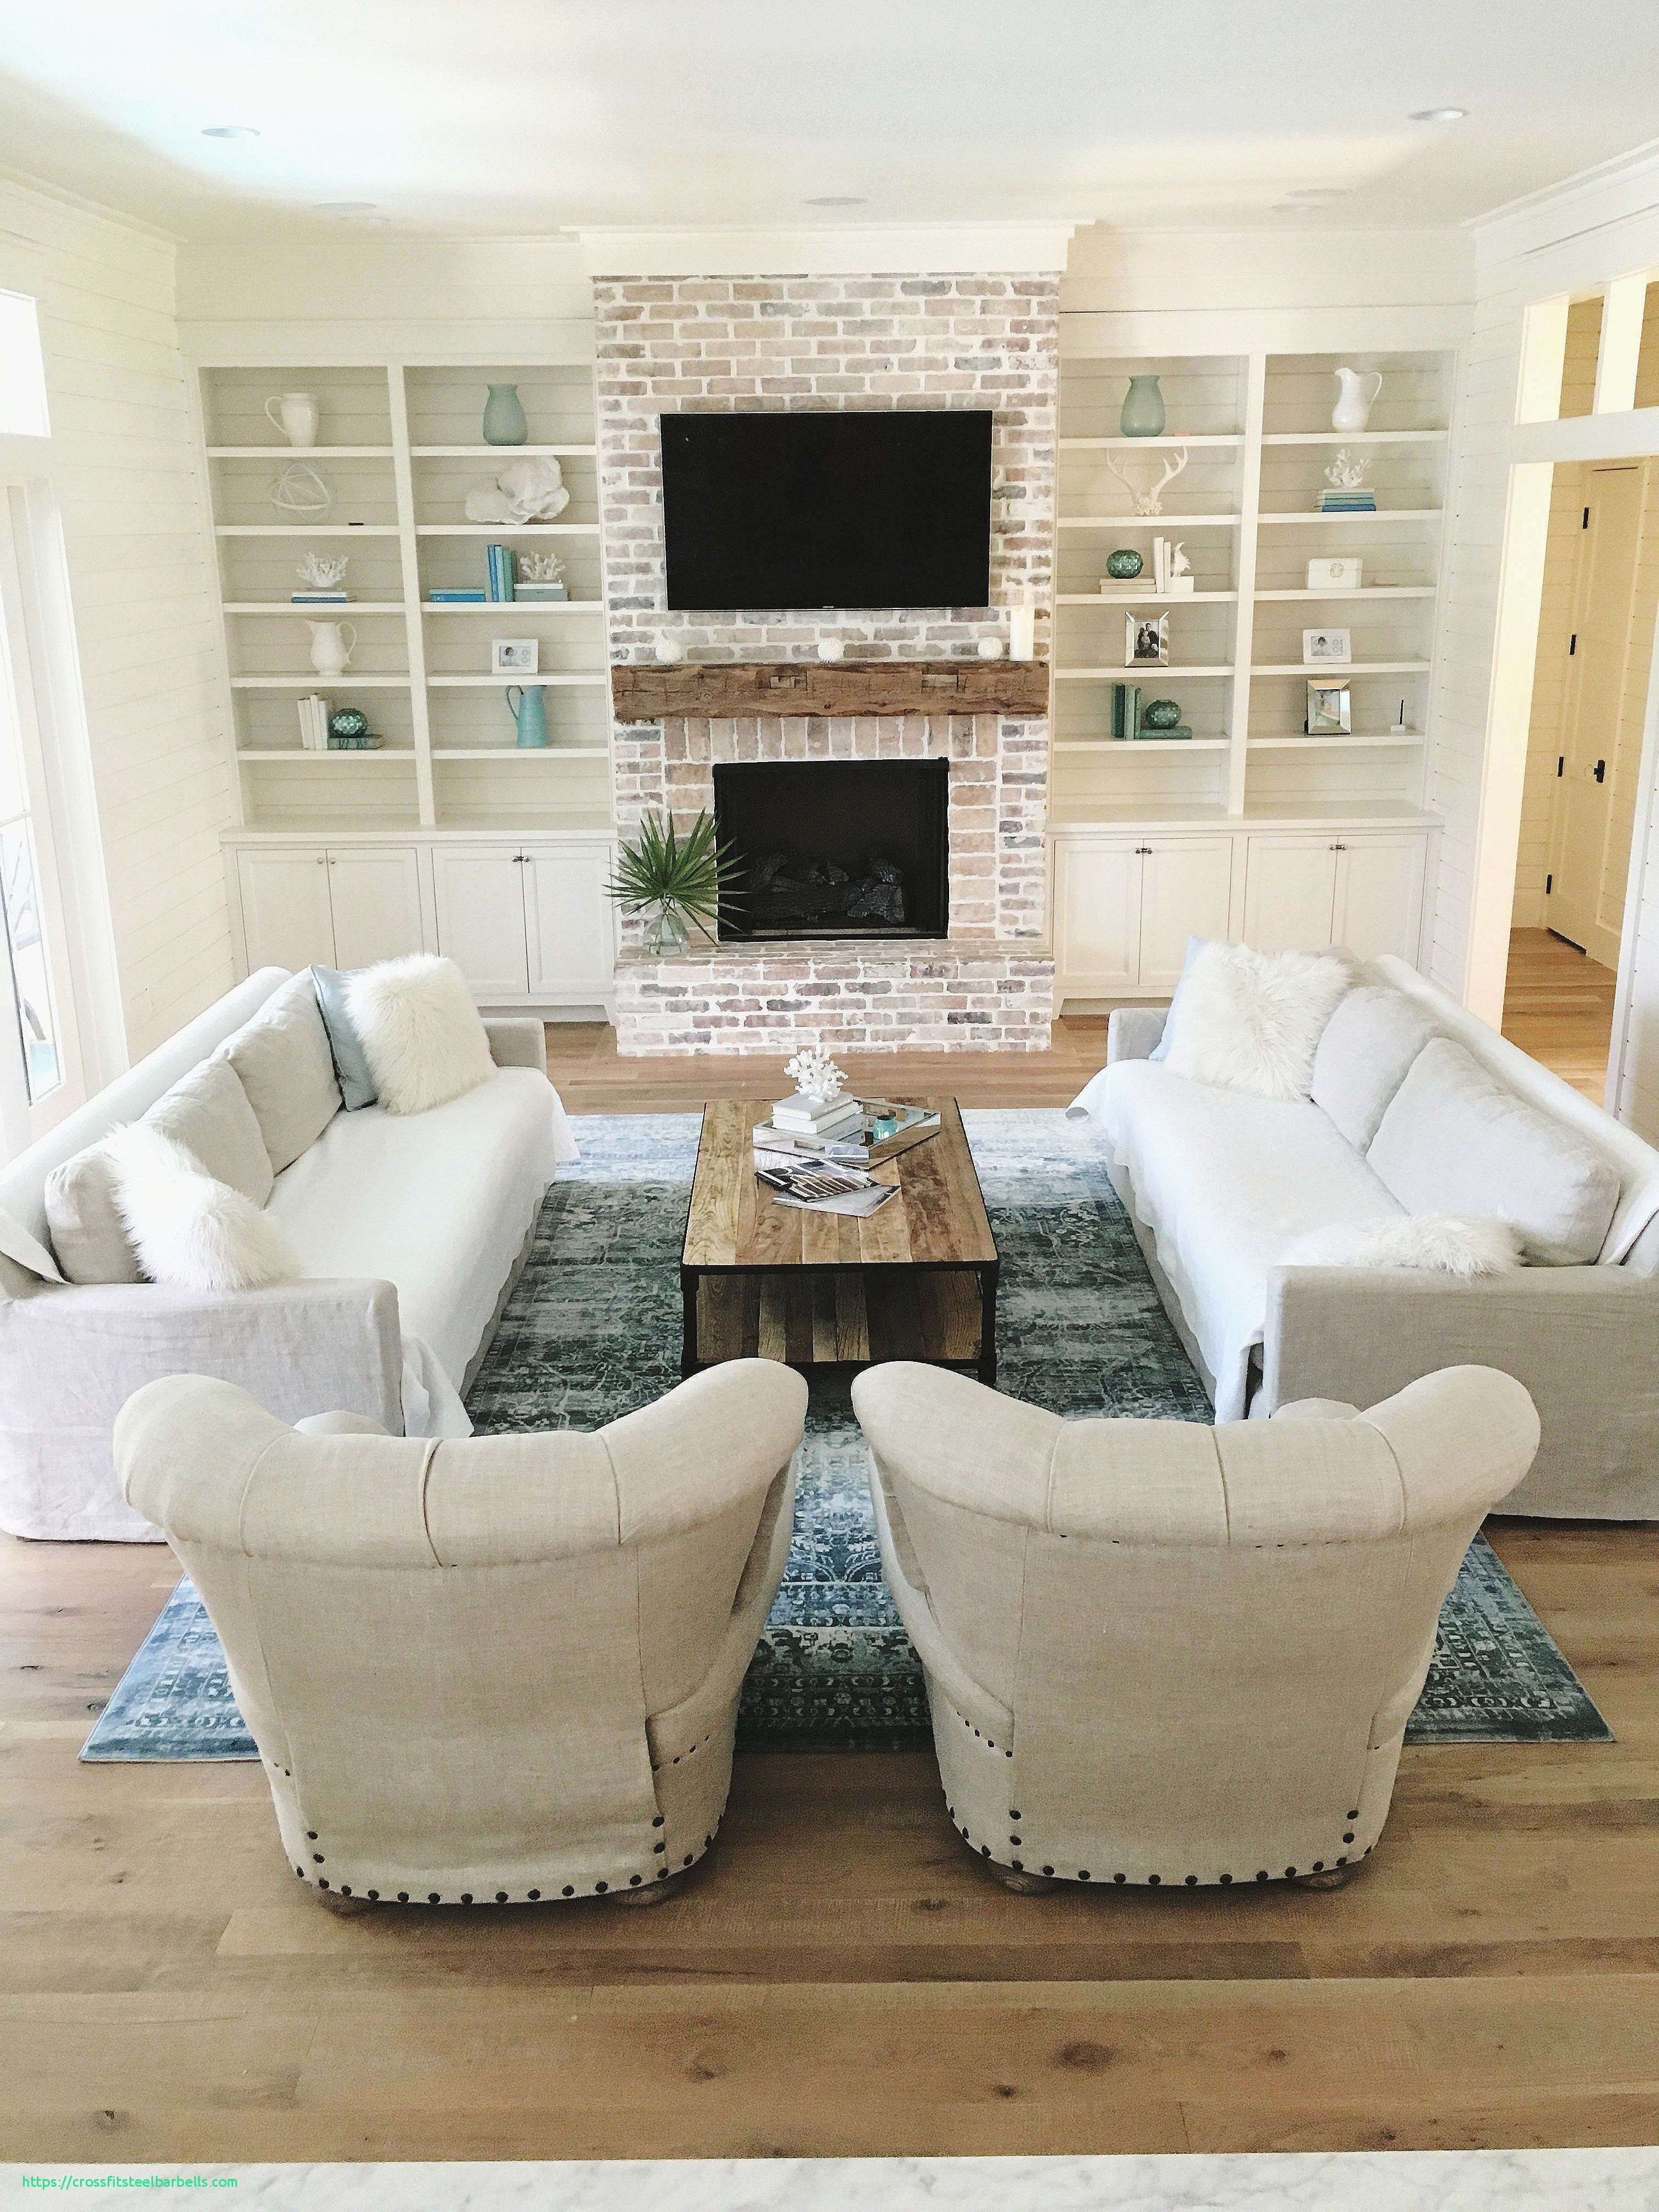 Living Room with Fireplace Awesome Elegant Living Room Ideas 2019